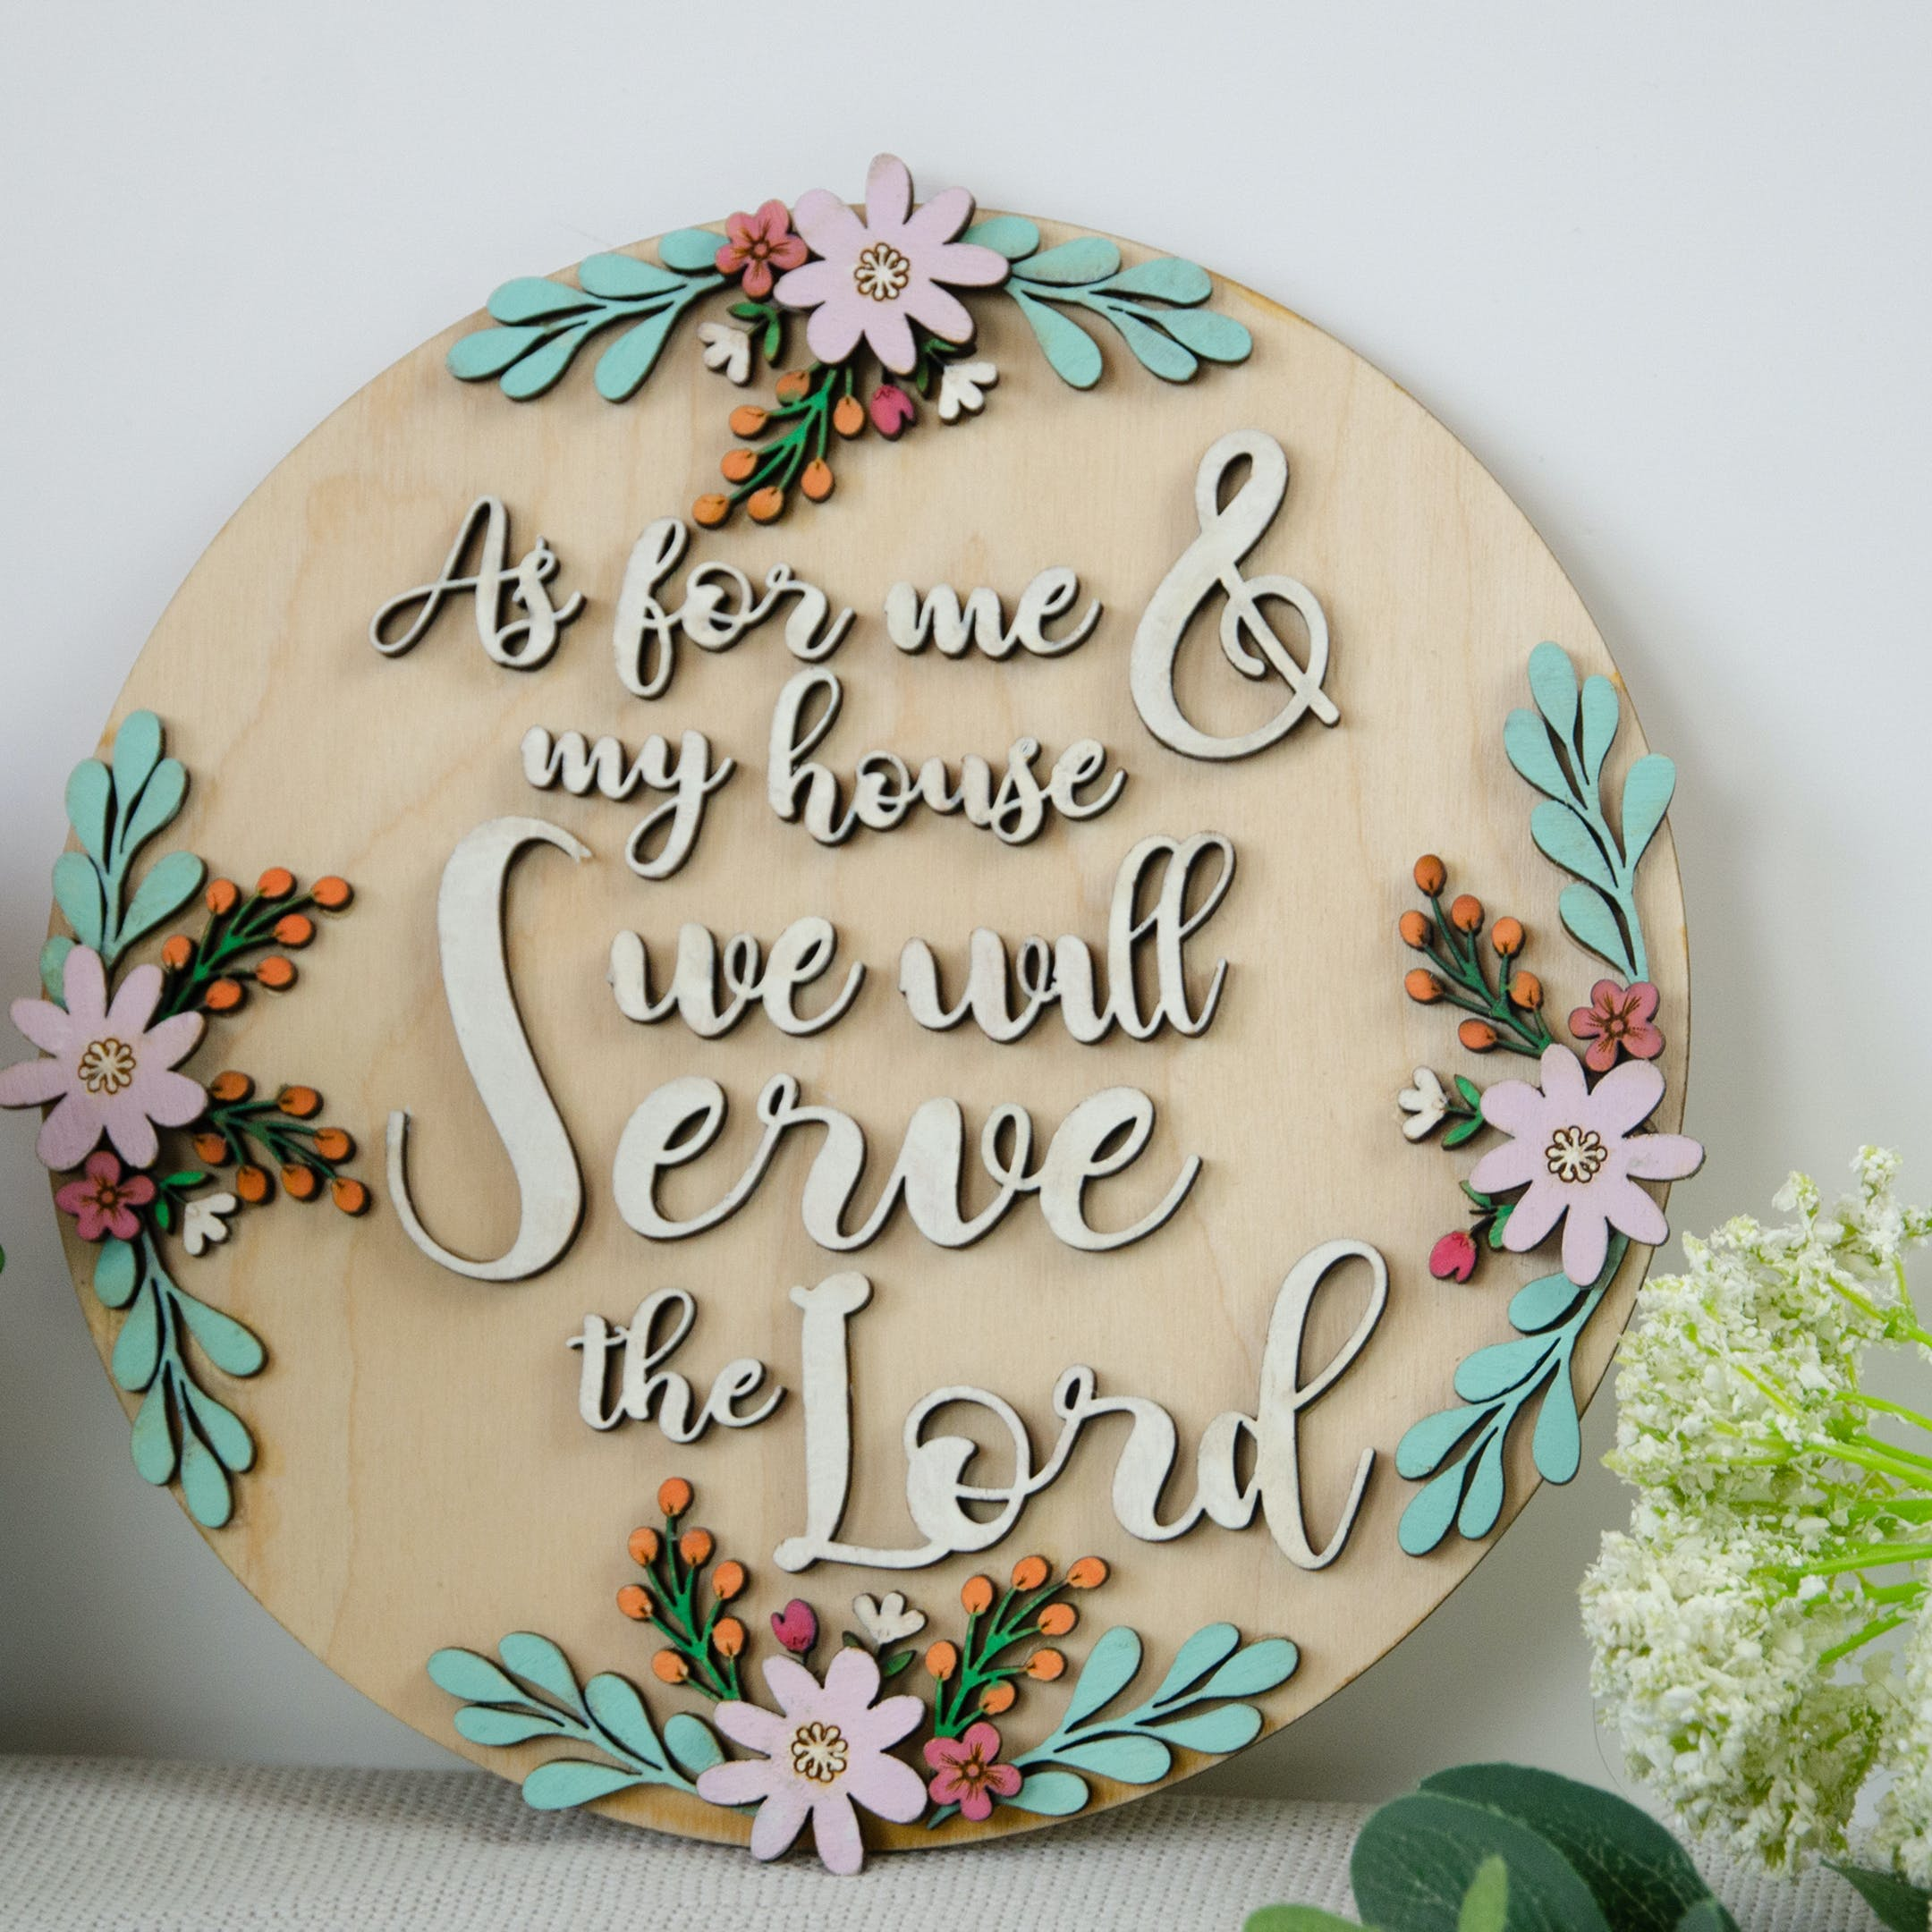 Serve the Lord - Wooden Verse Sign - Joshua 24:15 - Birch and Tides